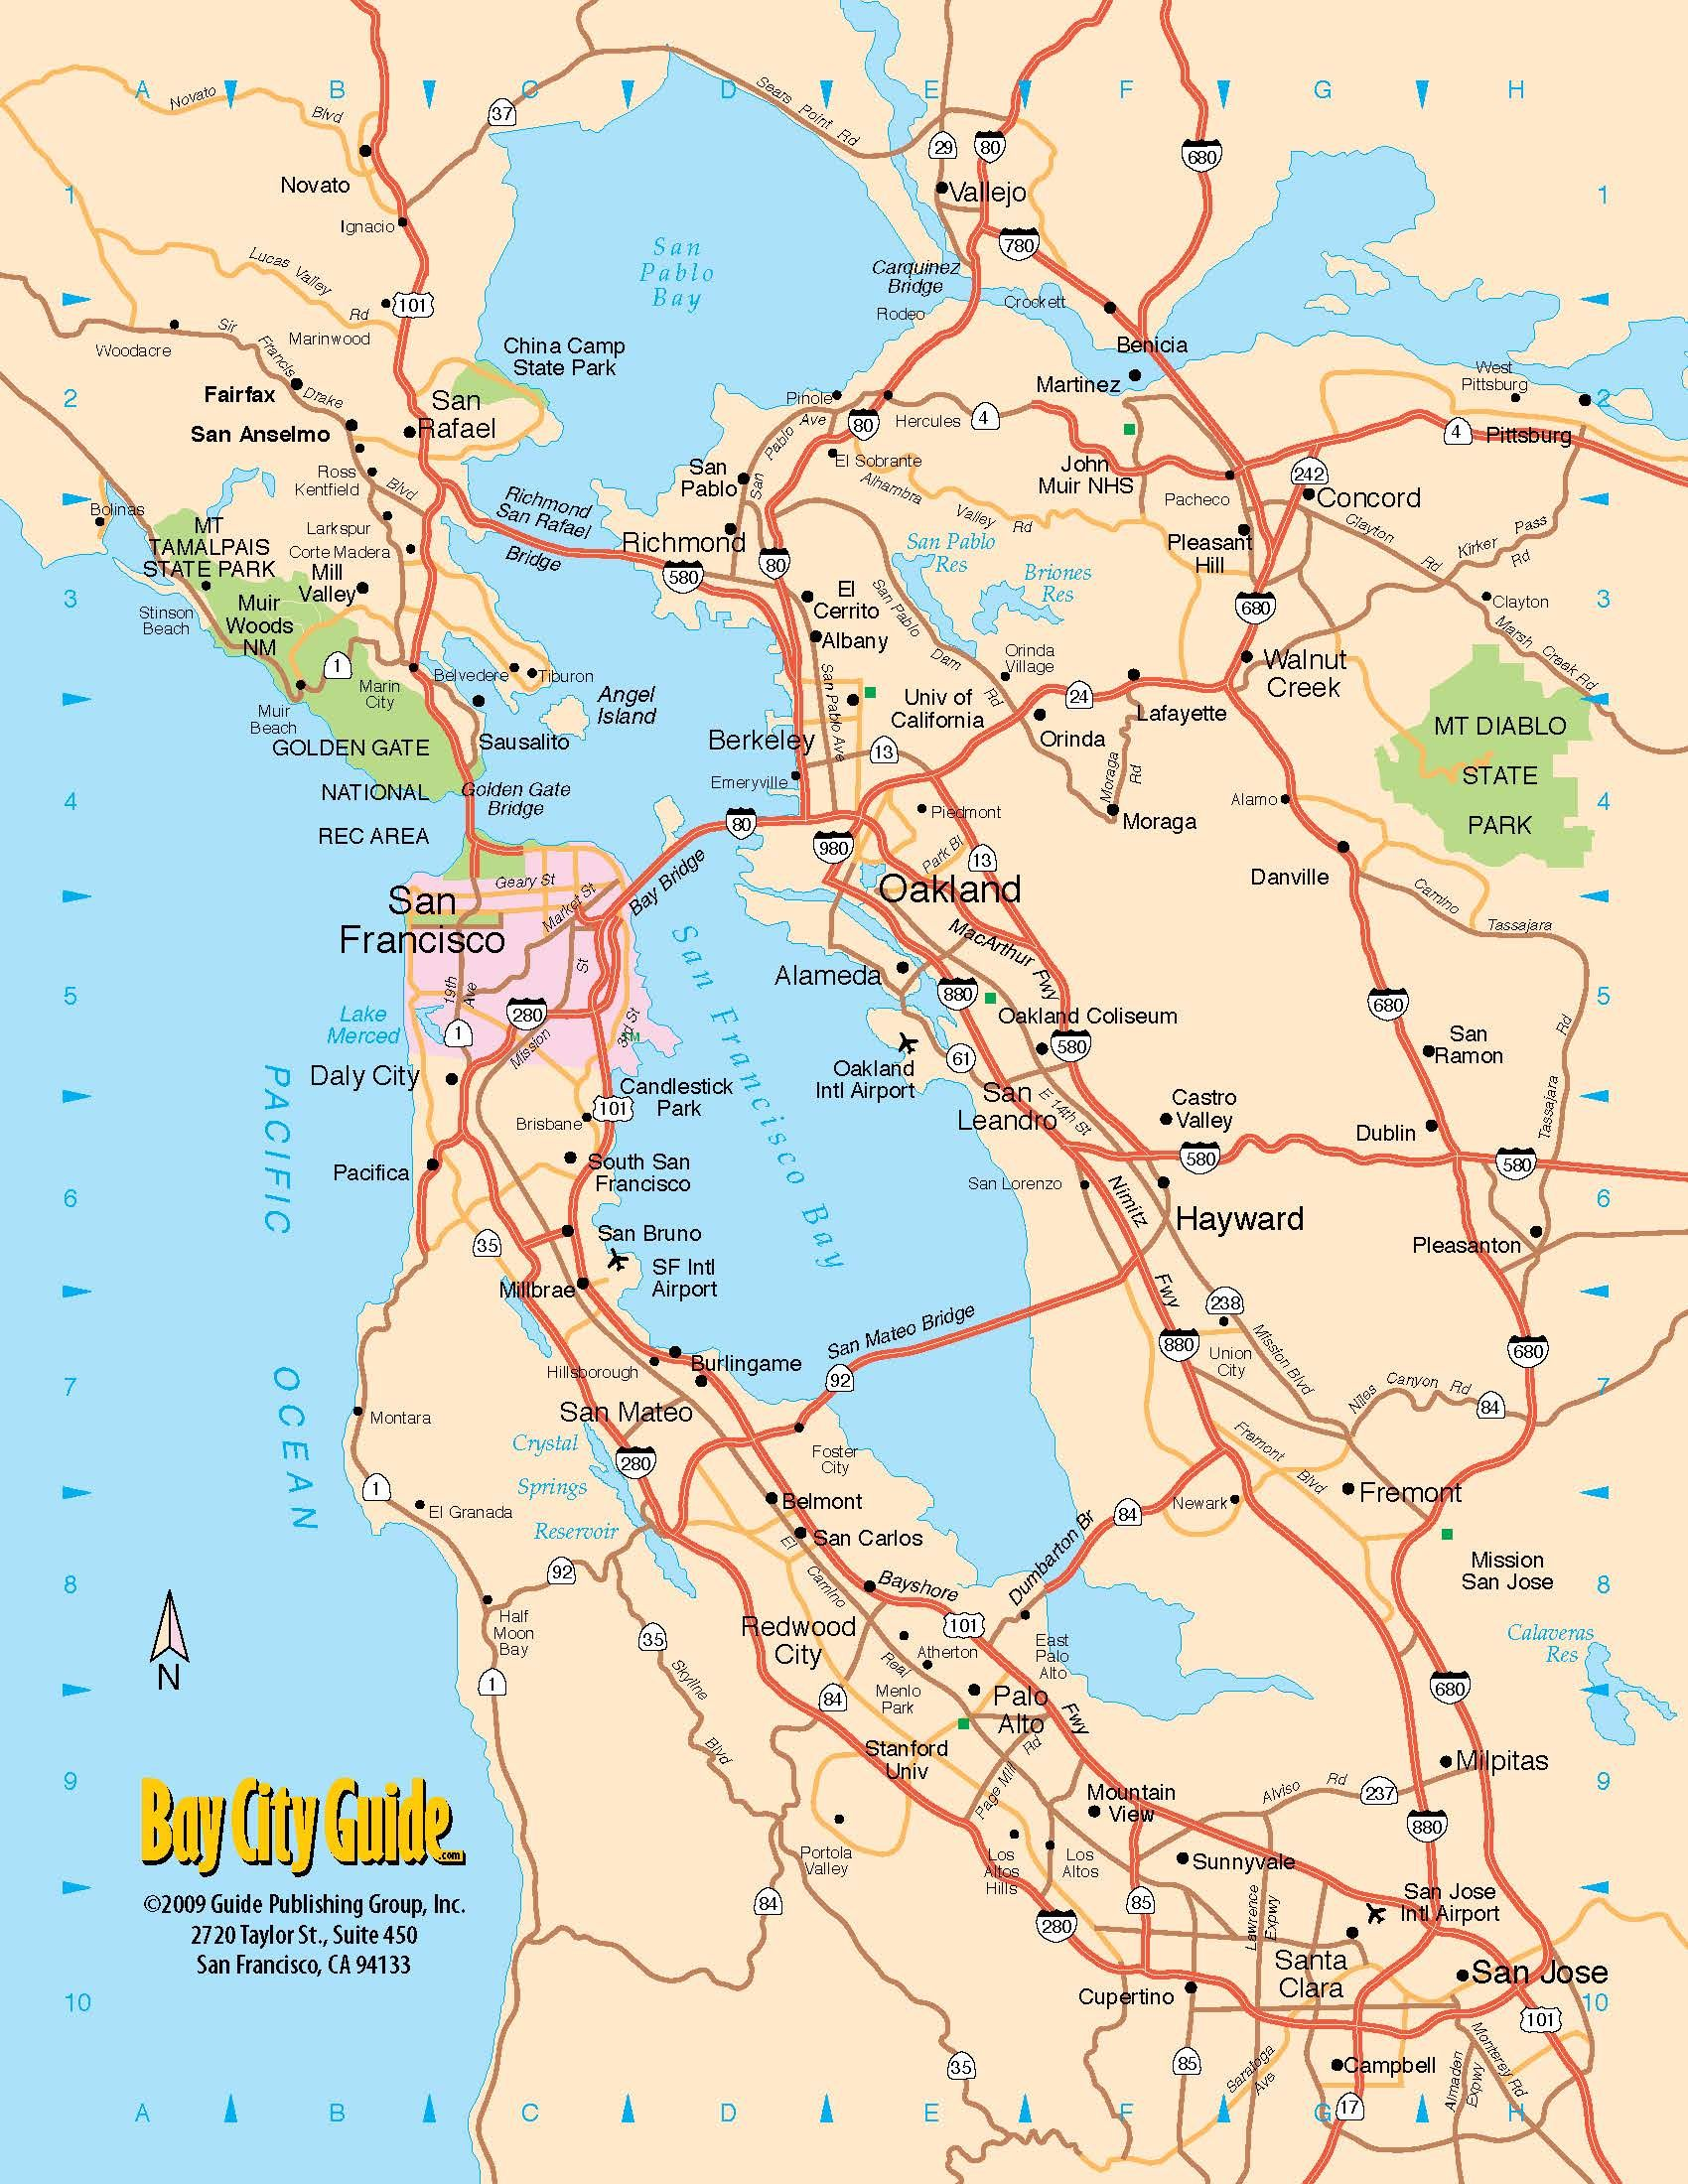 0 Tourist Map San Francisco Bay Area North California Freeway System 0b Jpg 1700 2200 San Francisco Tours San Francisco California San Francisco Bay Area The bay of fundy on the eastern coast is known for having the highest tidal range in the world. pinterest